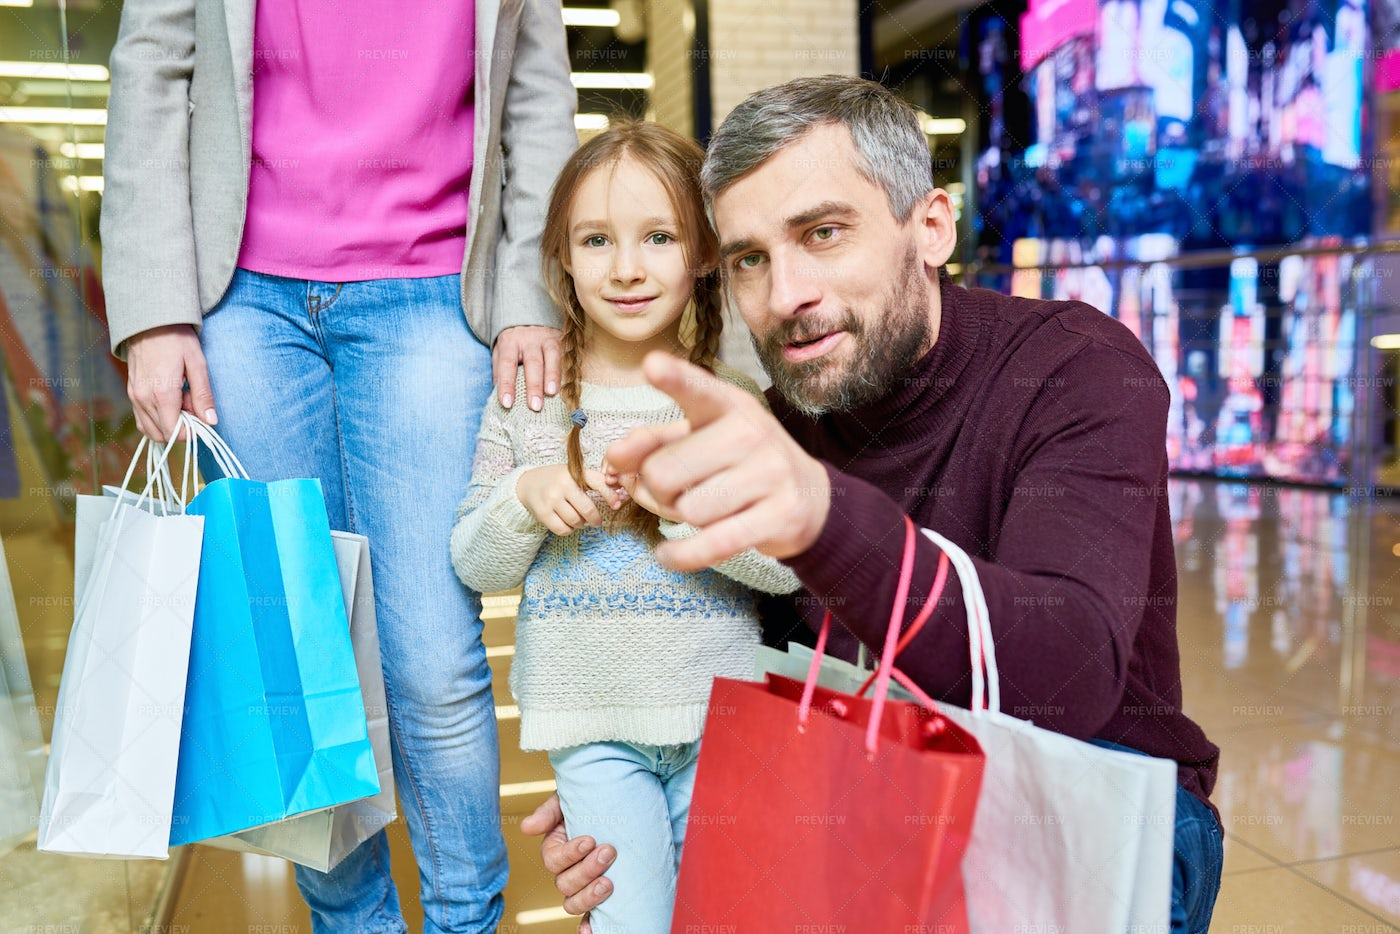 Little Girl Shopping With Dad: Stock Photos